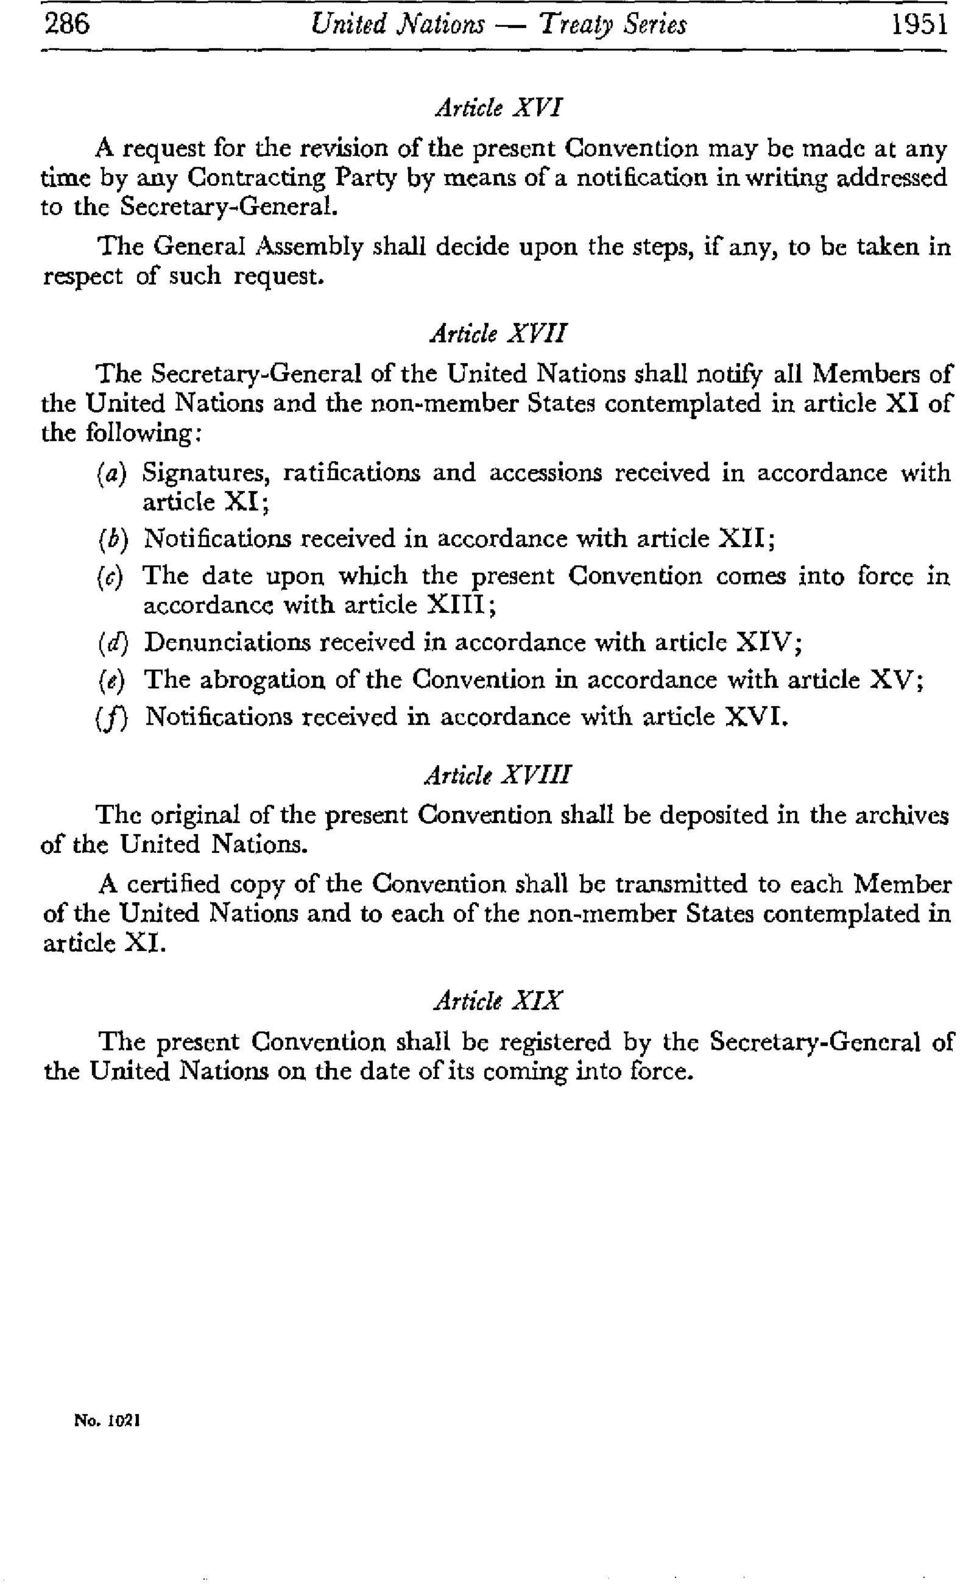 Article XVII The Secretary-General of the United Nations shall notify all Members of the United Nations and the non-member States contemplated in article XI of the following: (a) Signatures,